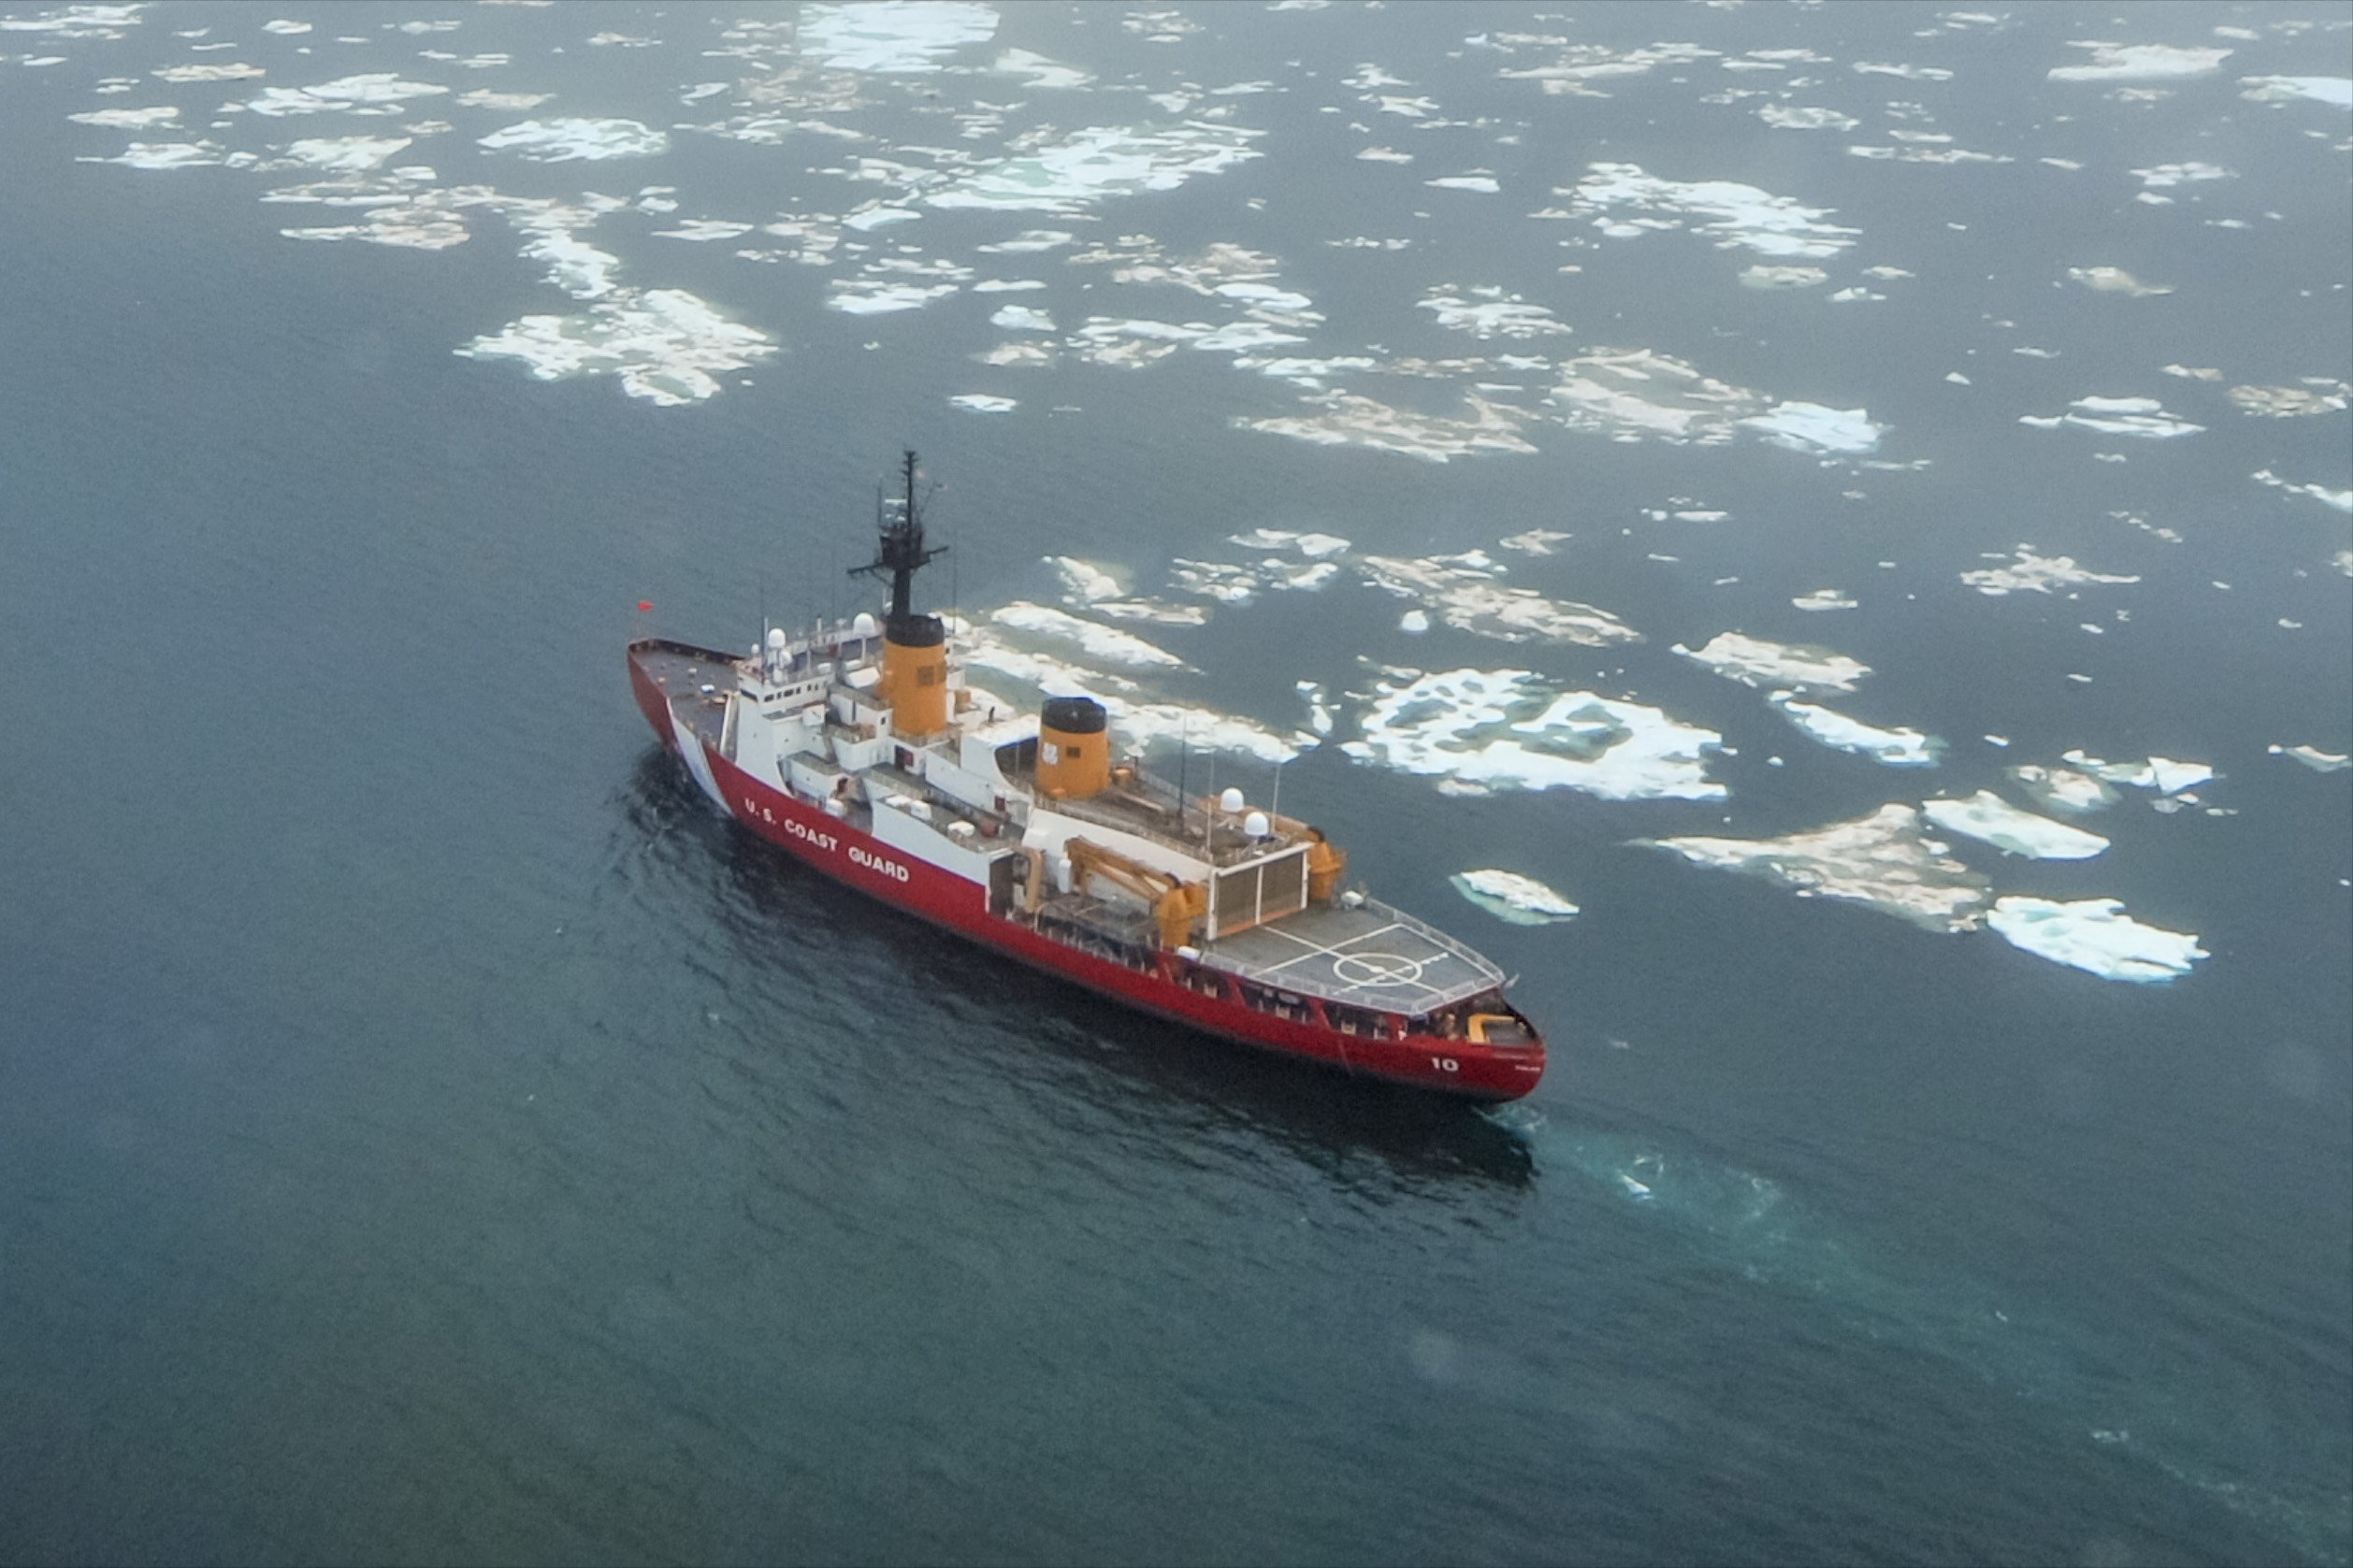 Trump calls for an accelerated expansion of the U.S. icebreaker fleet